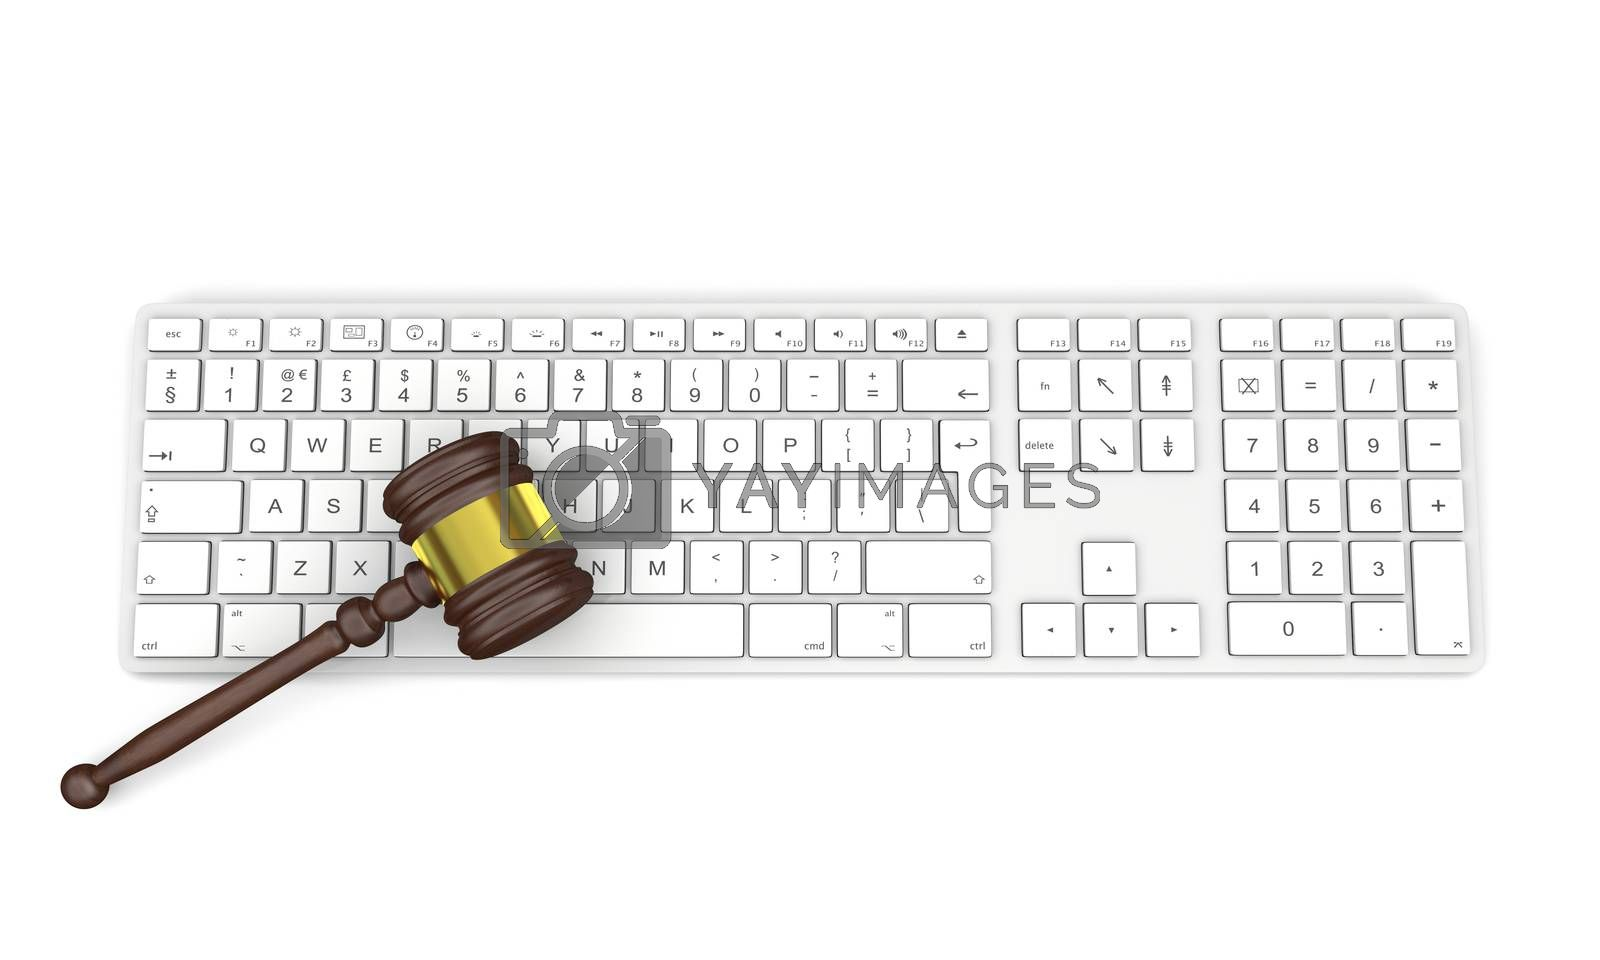 Technology and law by Harvepino